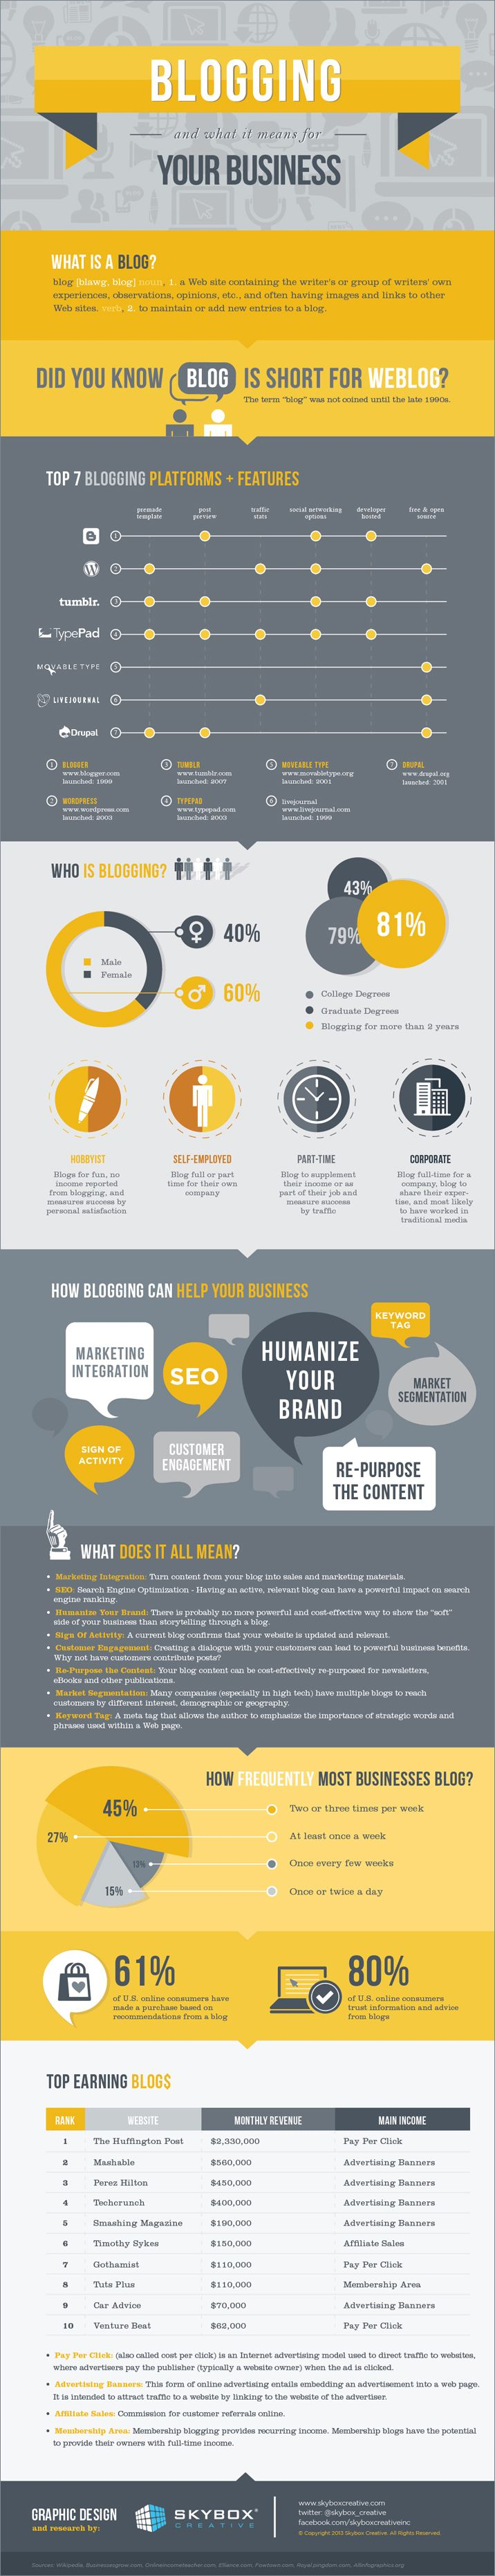 Infographic - Blogging for Business